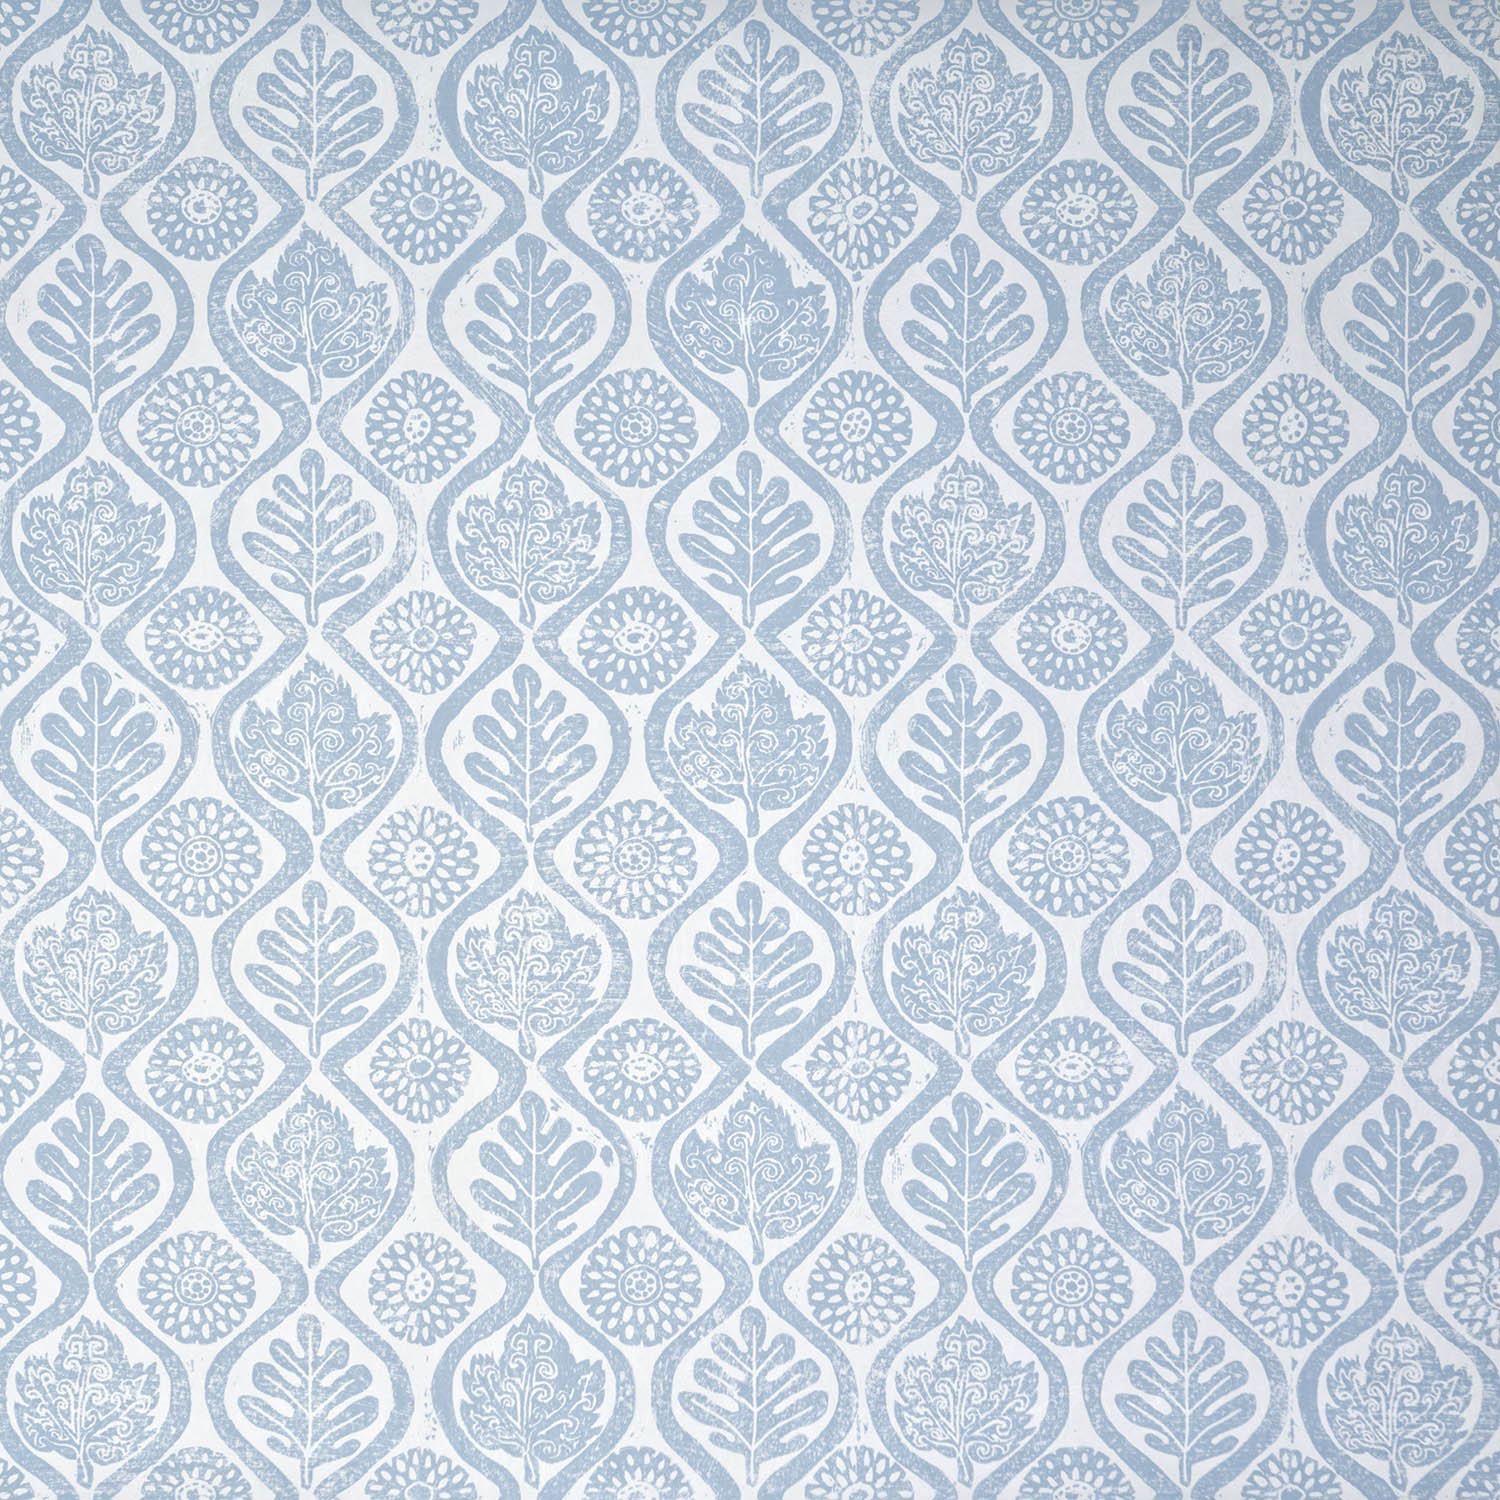 <p><strong>OAKLEAVES</strong>blue 820-02<a href=/the-peggy-angus-collection/oakleaves-blue-820-02>More →</a></p>